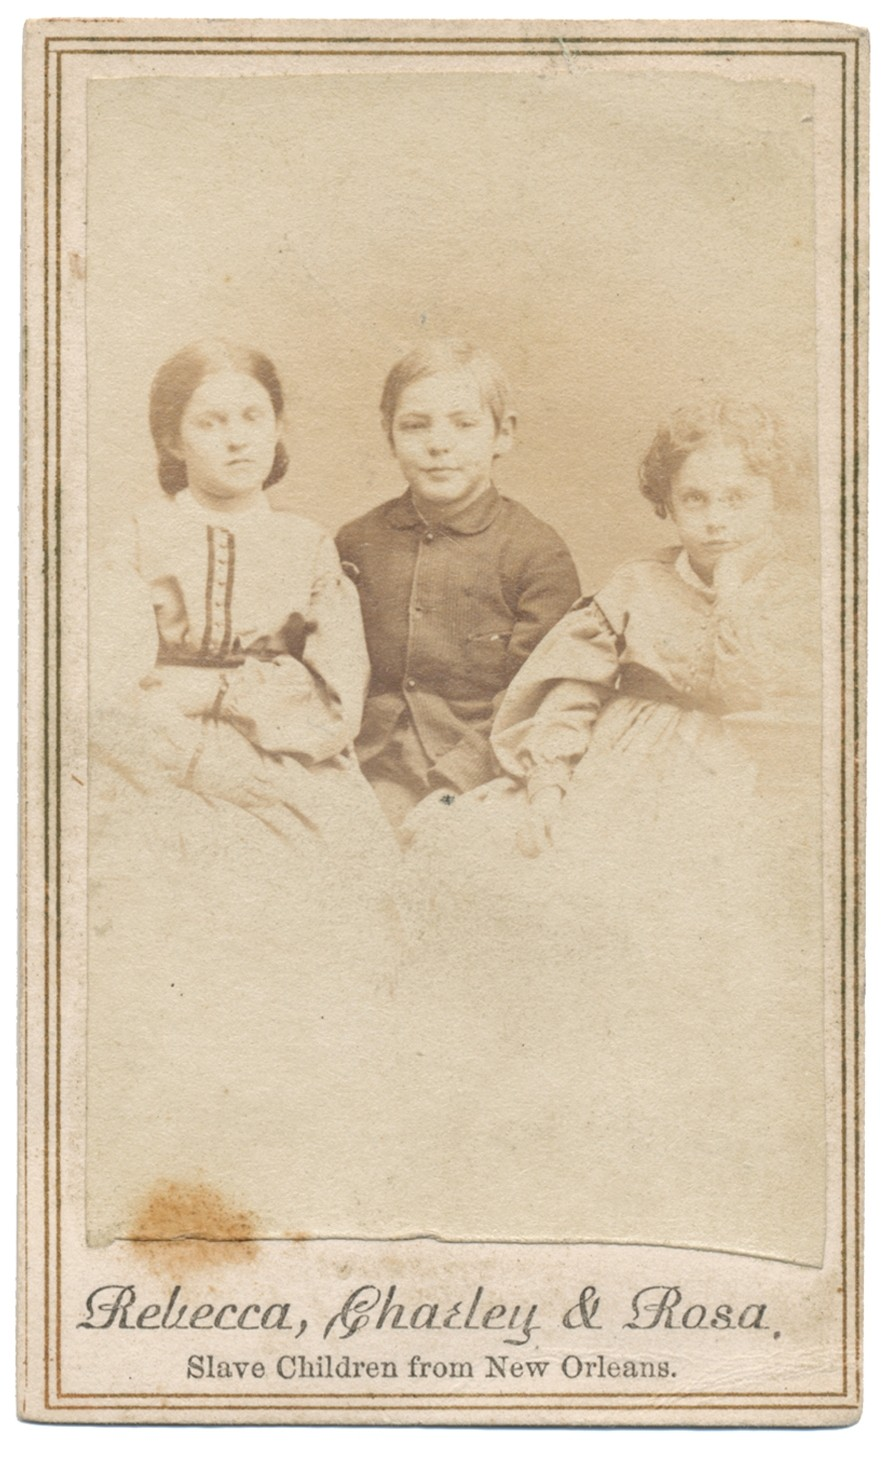 CDV 1864 VIEW OF SLAVE CHILDREN FROM NEW ORLEANS